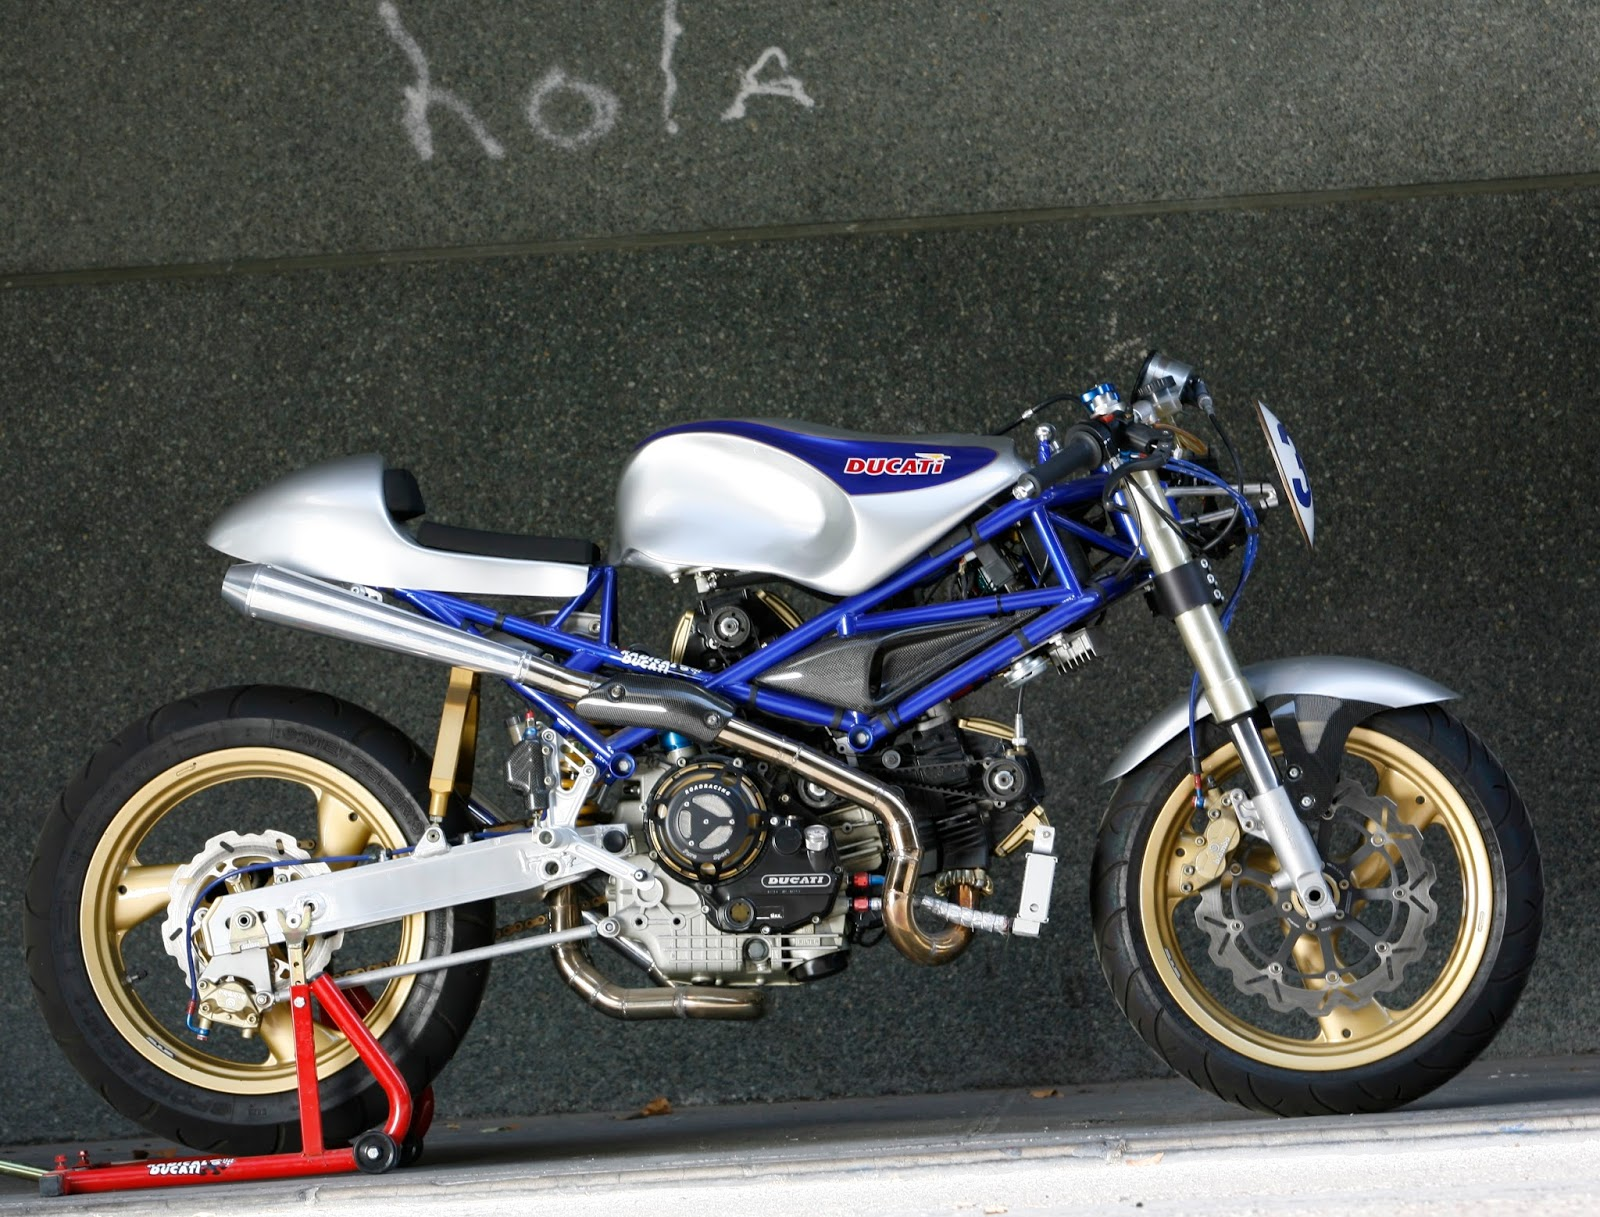 small resolution of the old blue making of http www radicalducati com index php page old blue